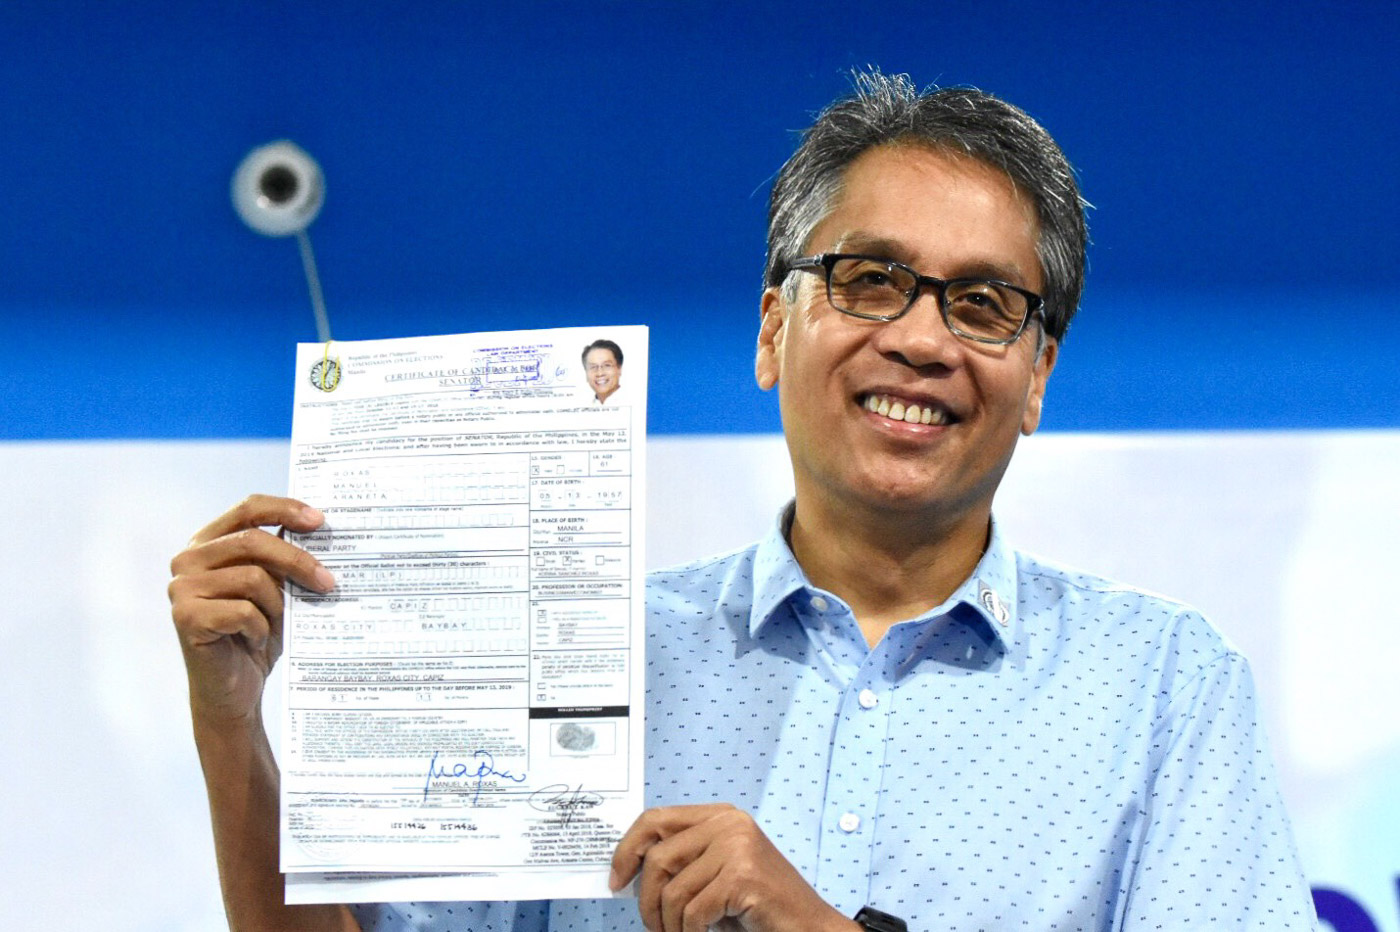 Mar Roxas files his Certificate of Candidacy for Senator on October 16, 2018, at the Comelec office in Manila. Photo by Angie de Silva/Rappler